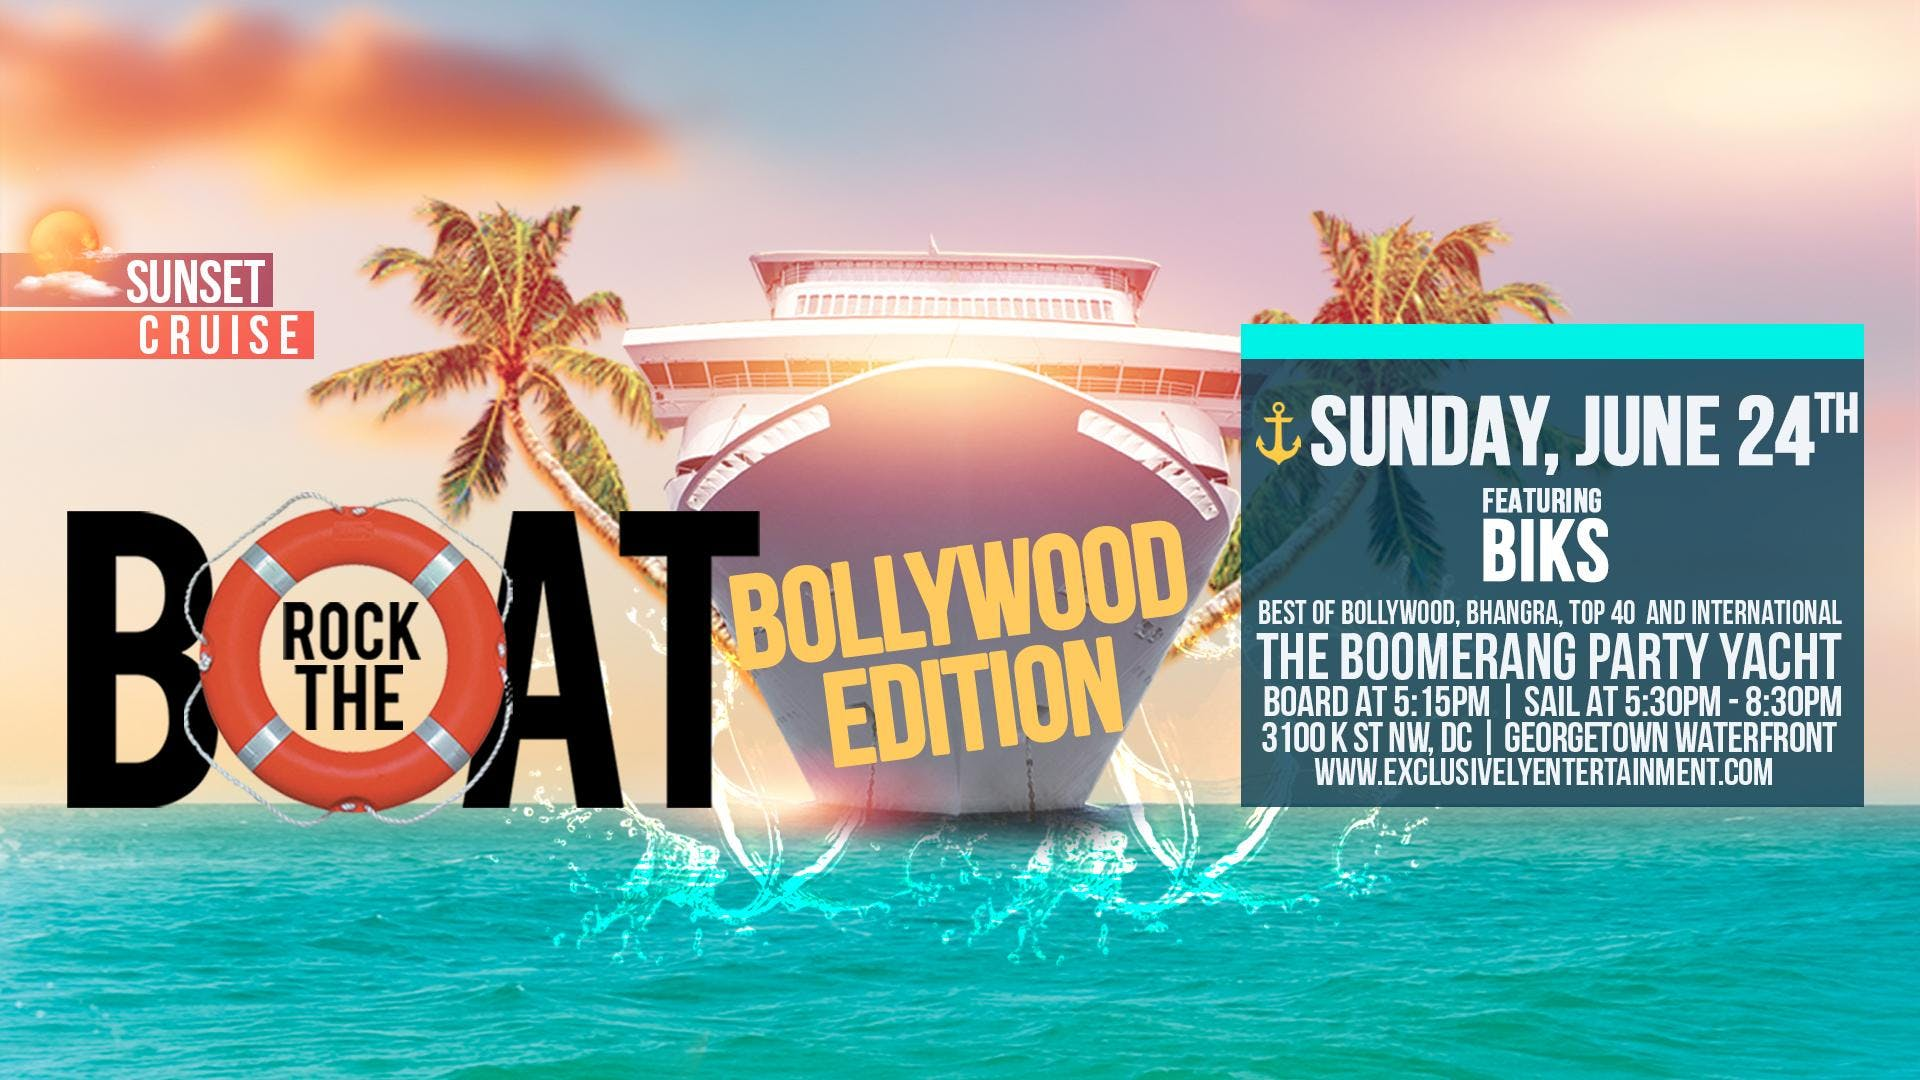 Rock the Boat - Bollywood Edition!